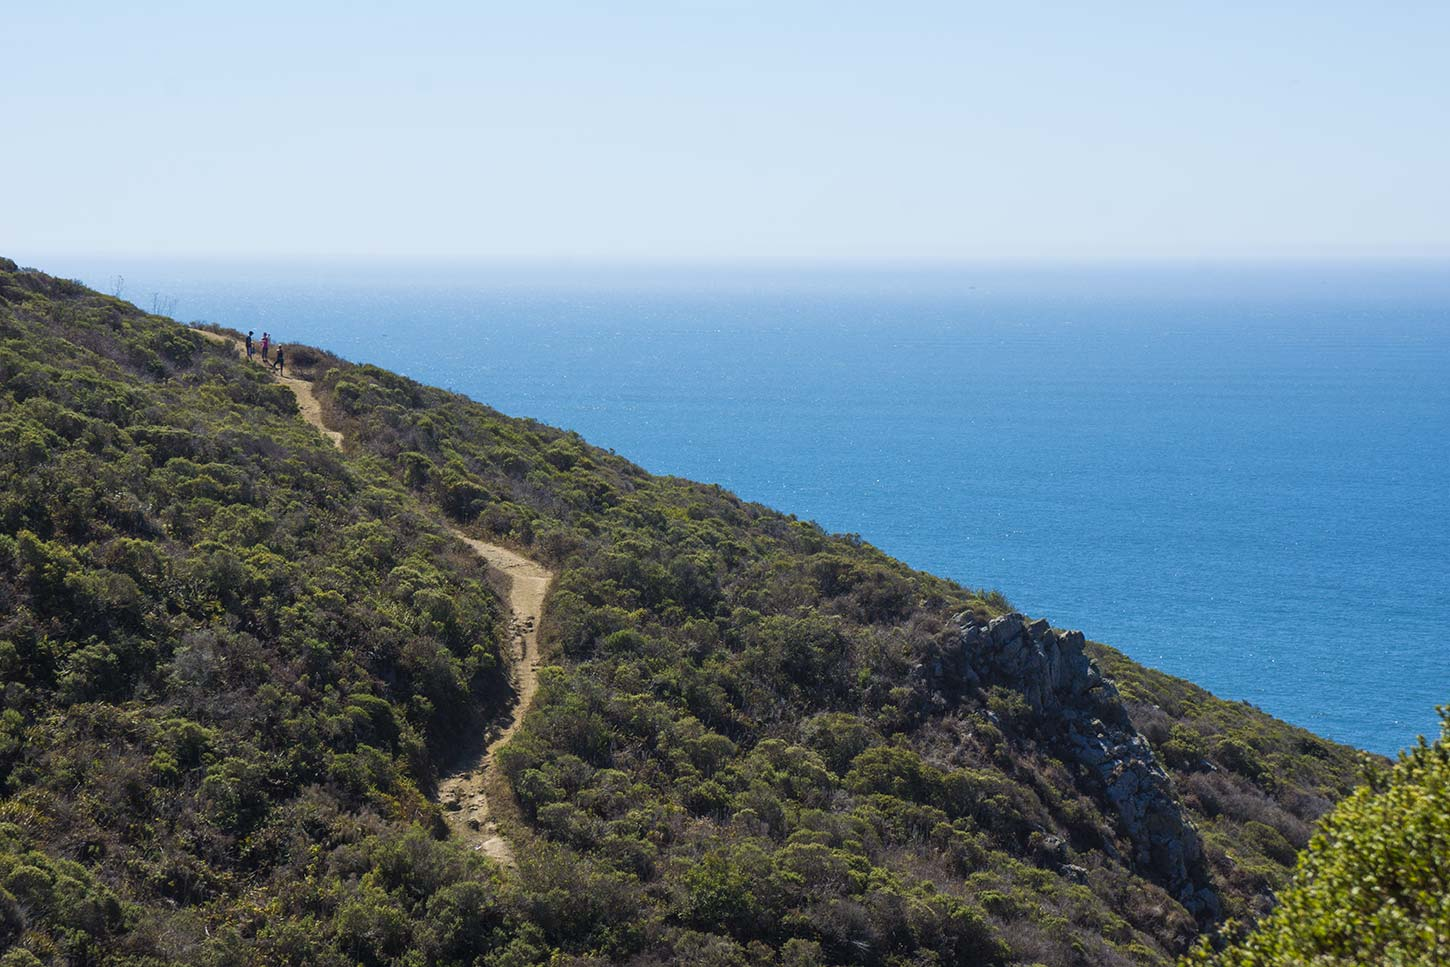 The Views Of Chaparral Covered Coastal Bluffs Are Replaced With Strikingly Diffe Wooded Green Hills And Wide Beach Town Muir